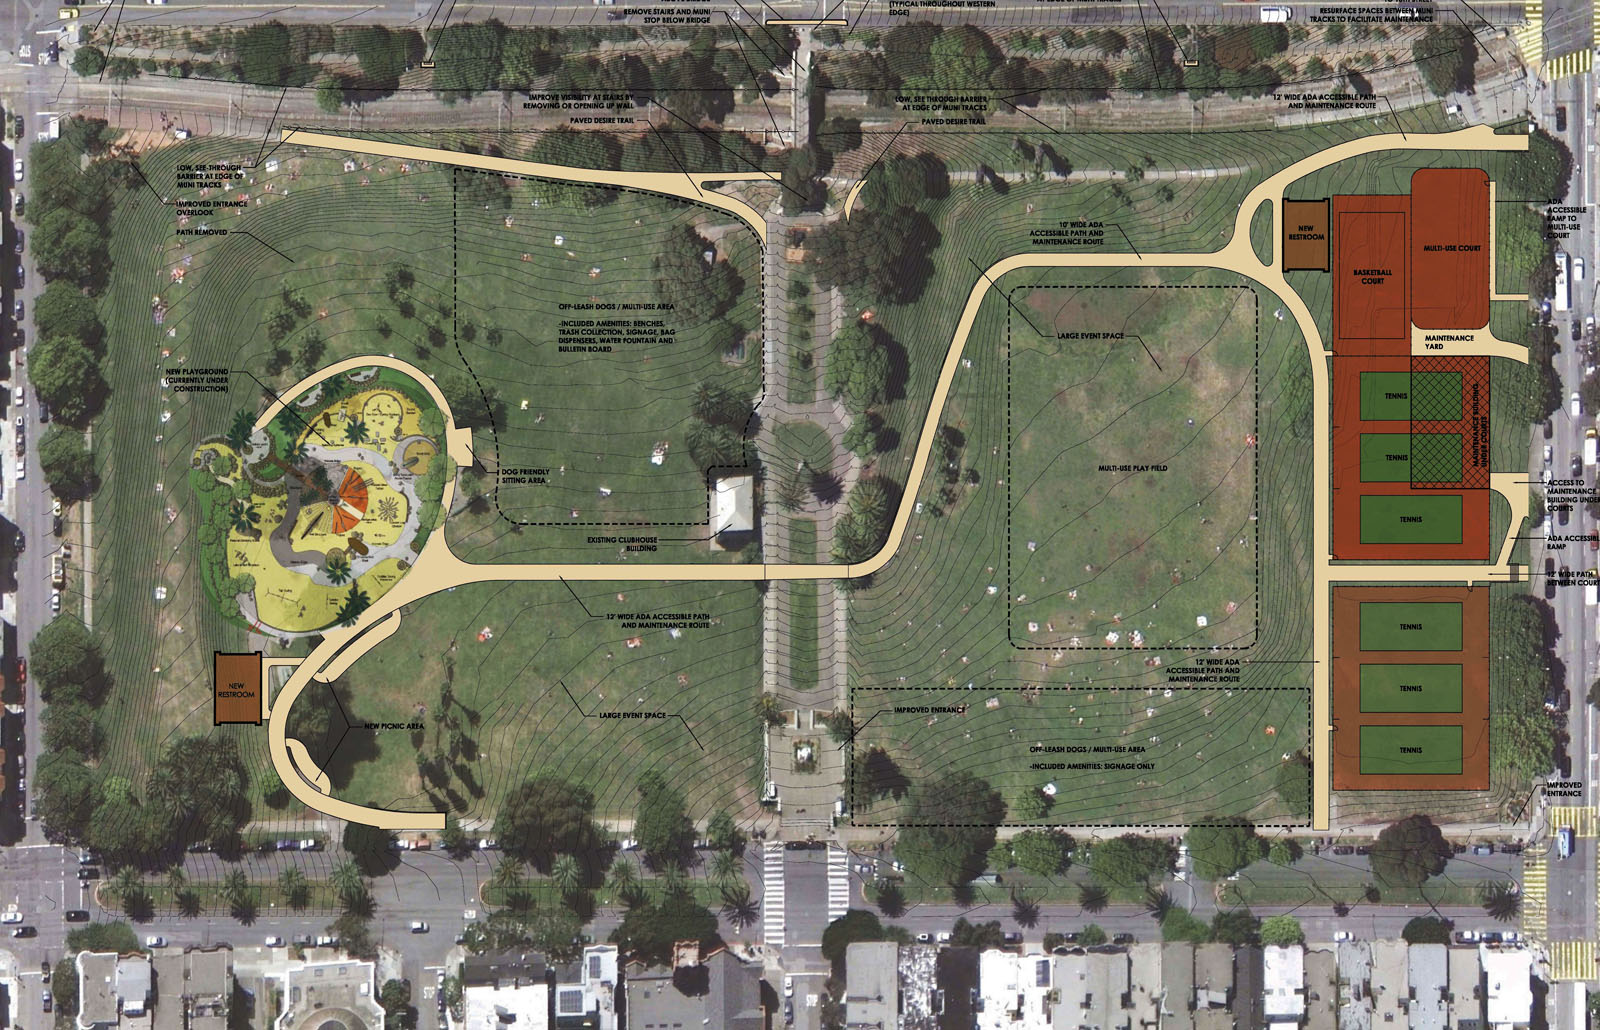 Dolores Park: A Historical Landmark?